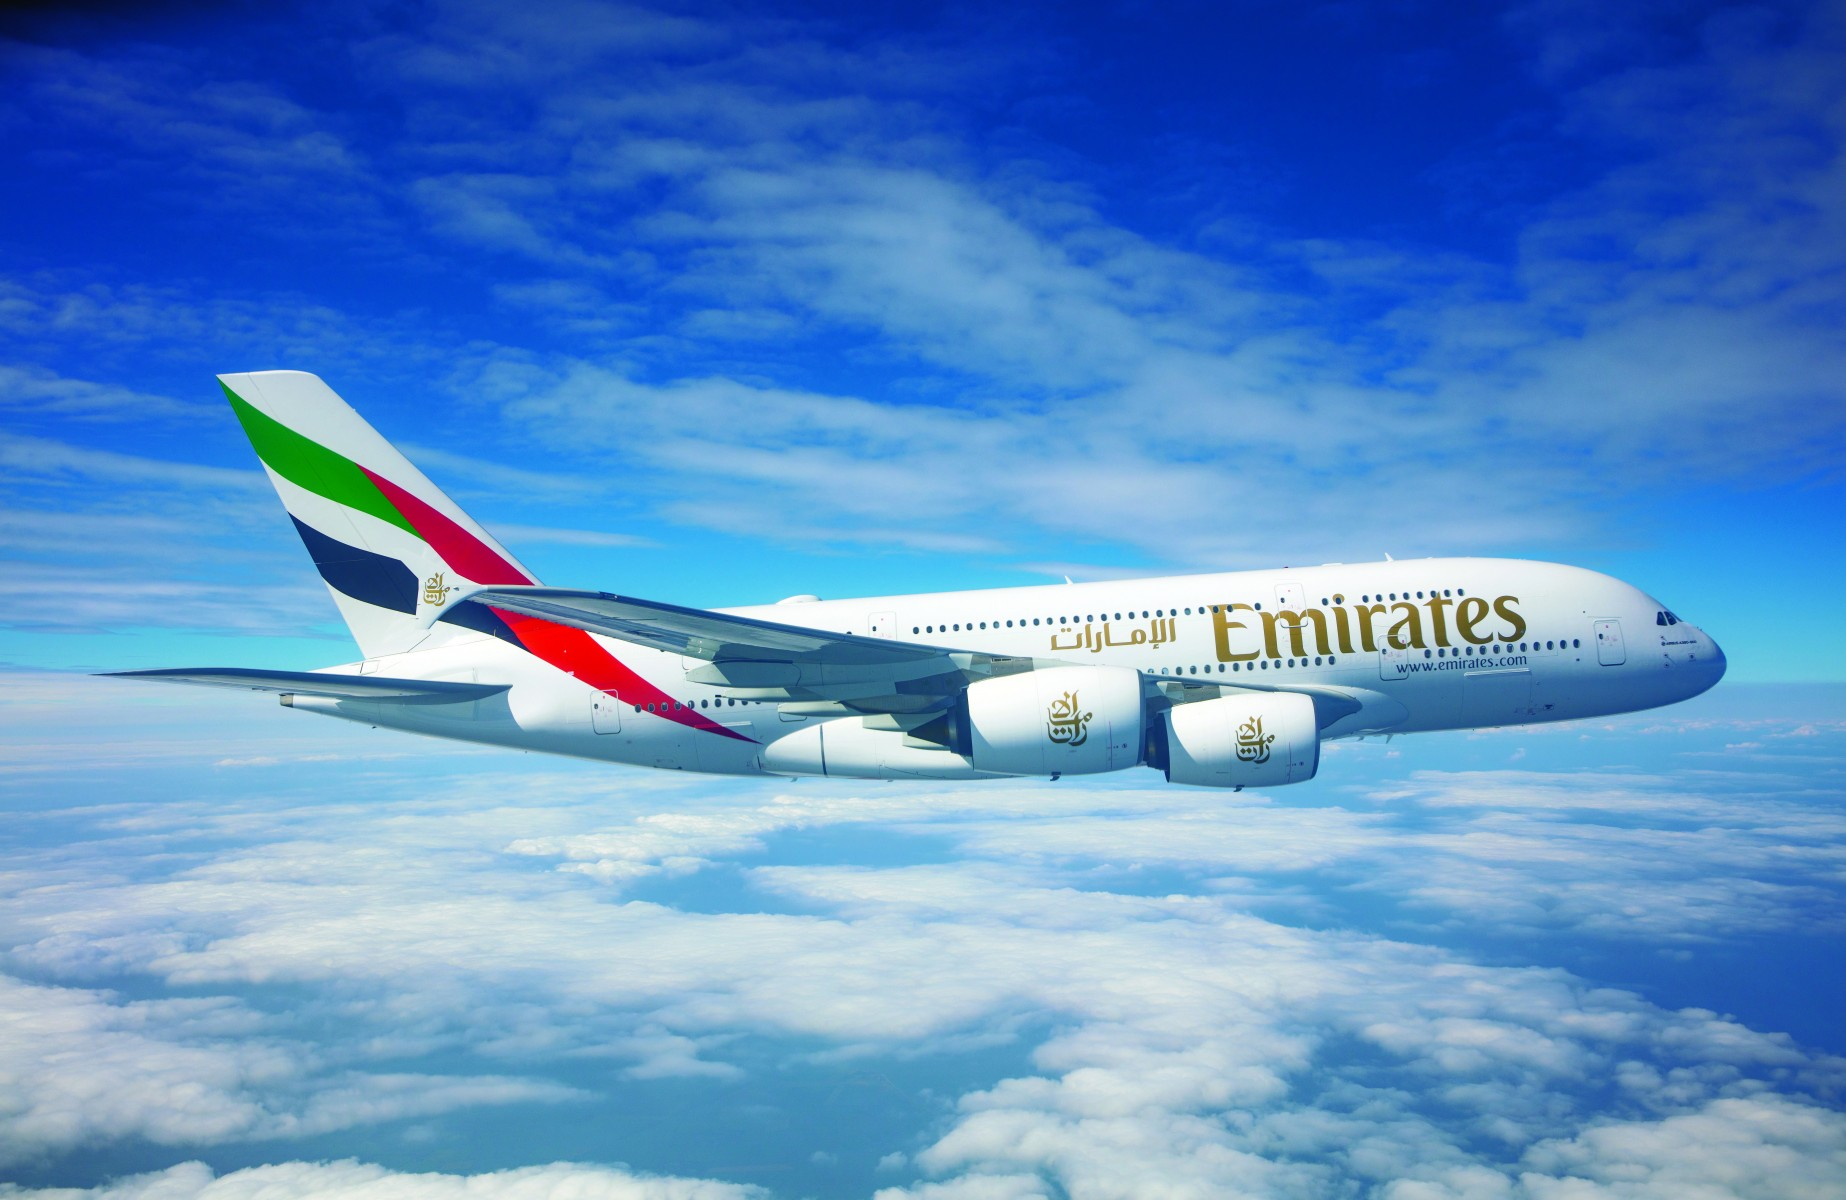 Emirates announces its first A380 service to Cairo